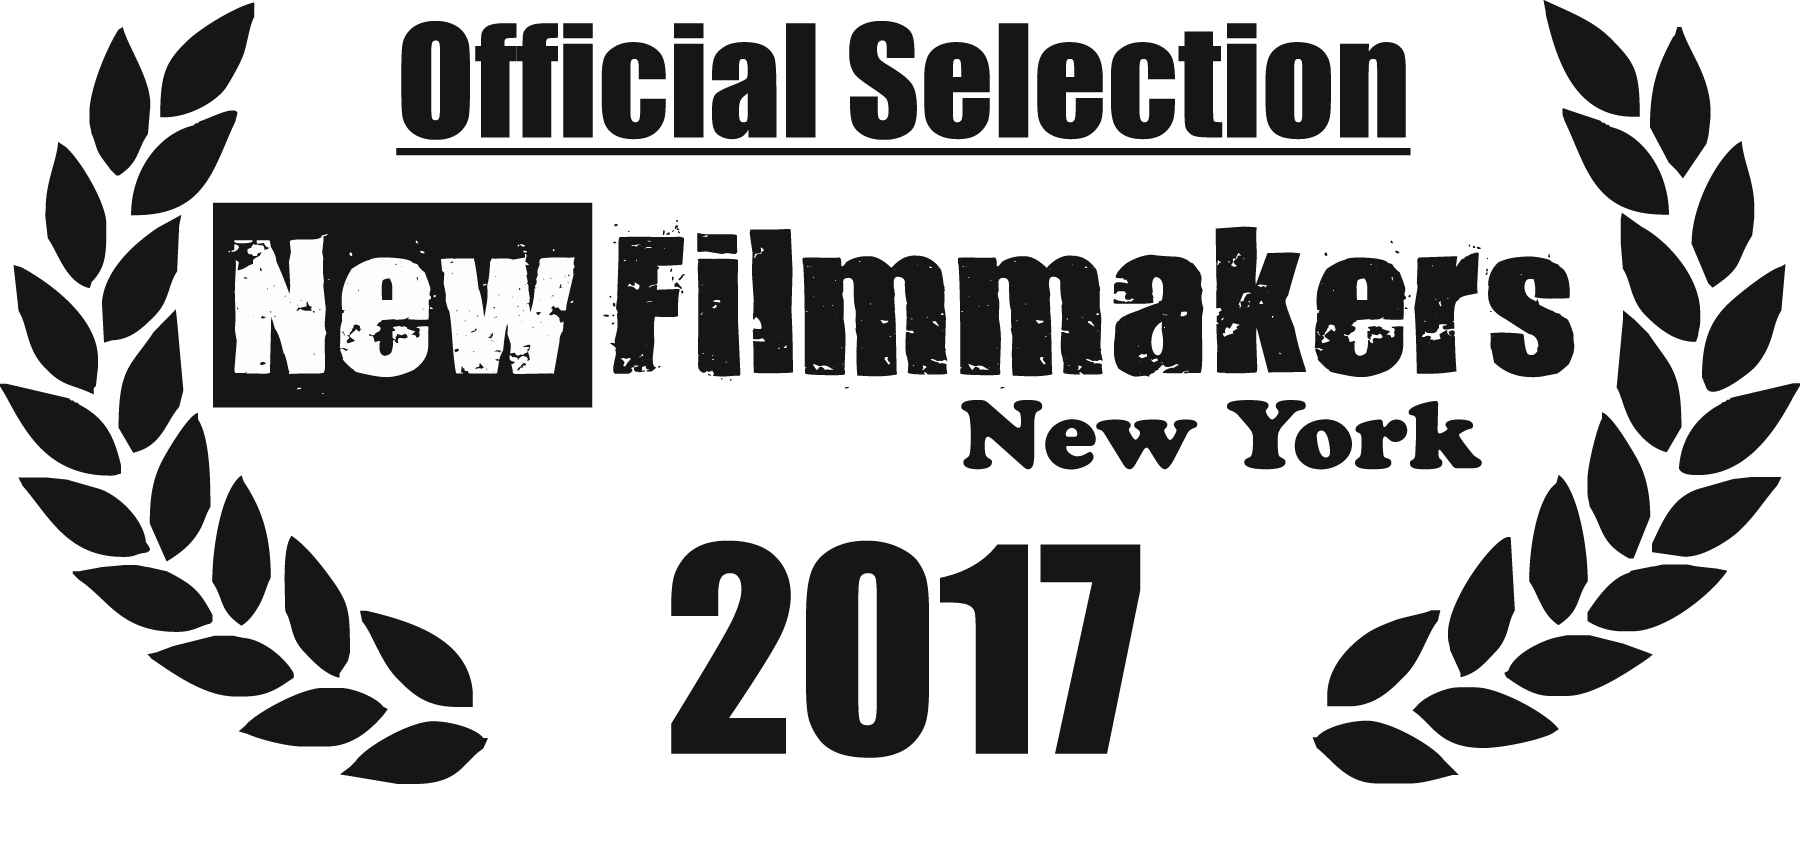 NewFilmmakersNew York - Baggage was featured the